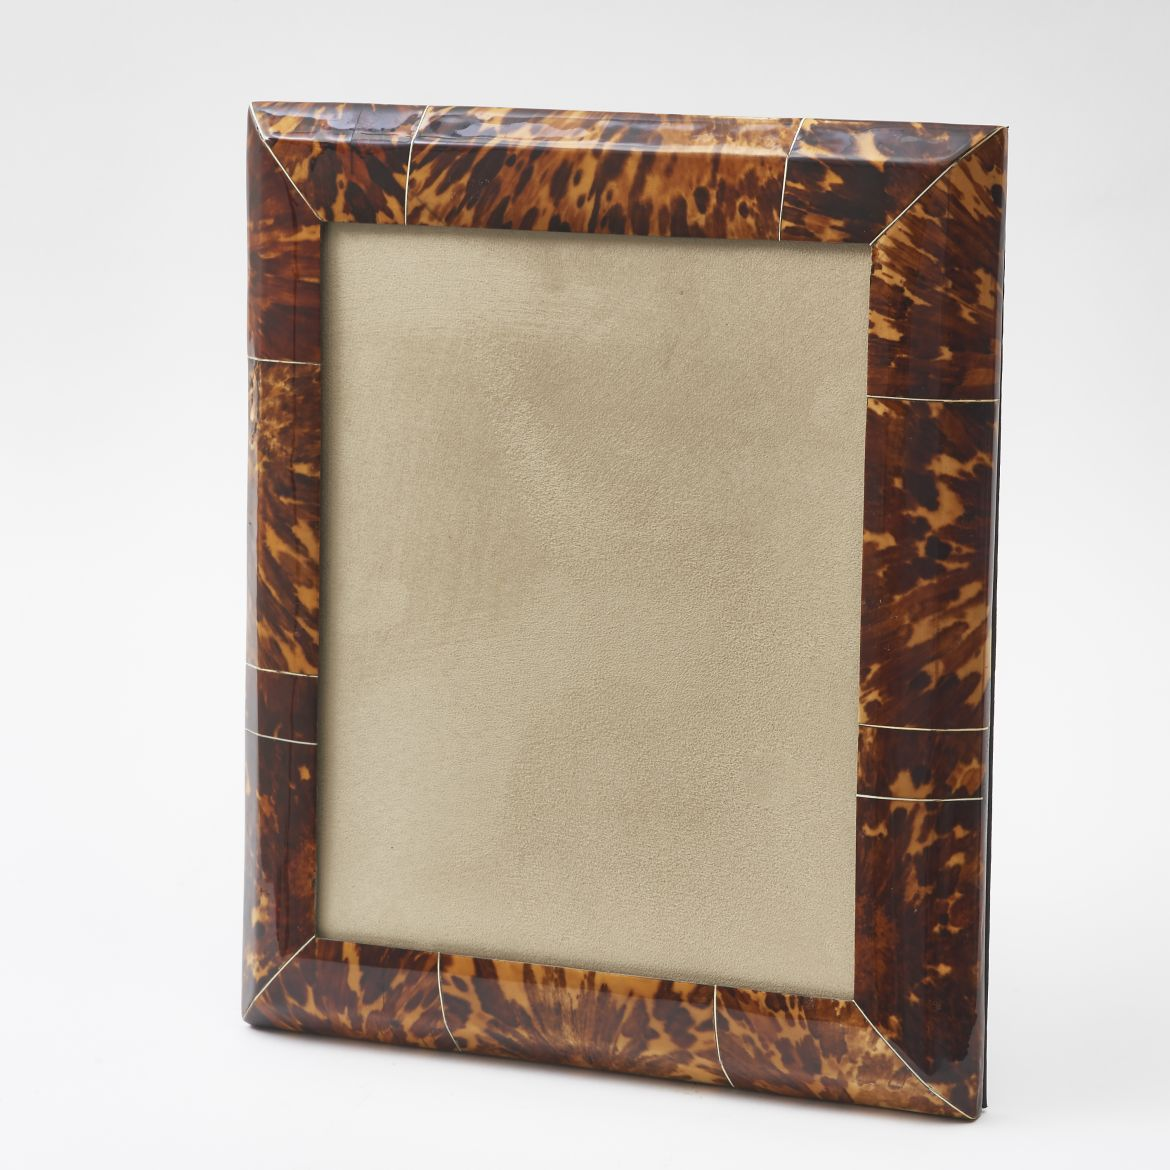 Large English Tortoiseshell Frame